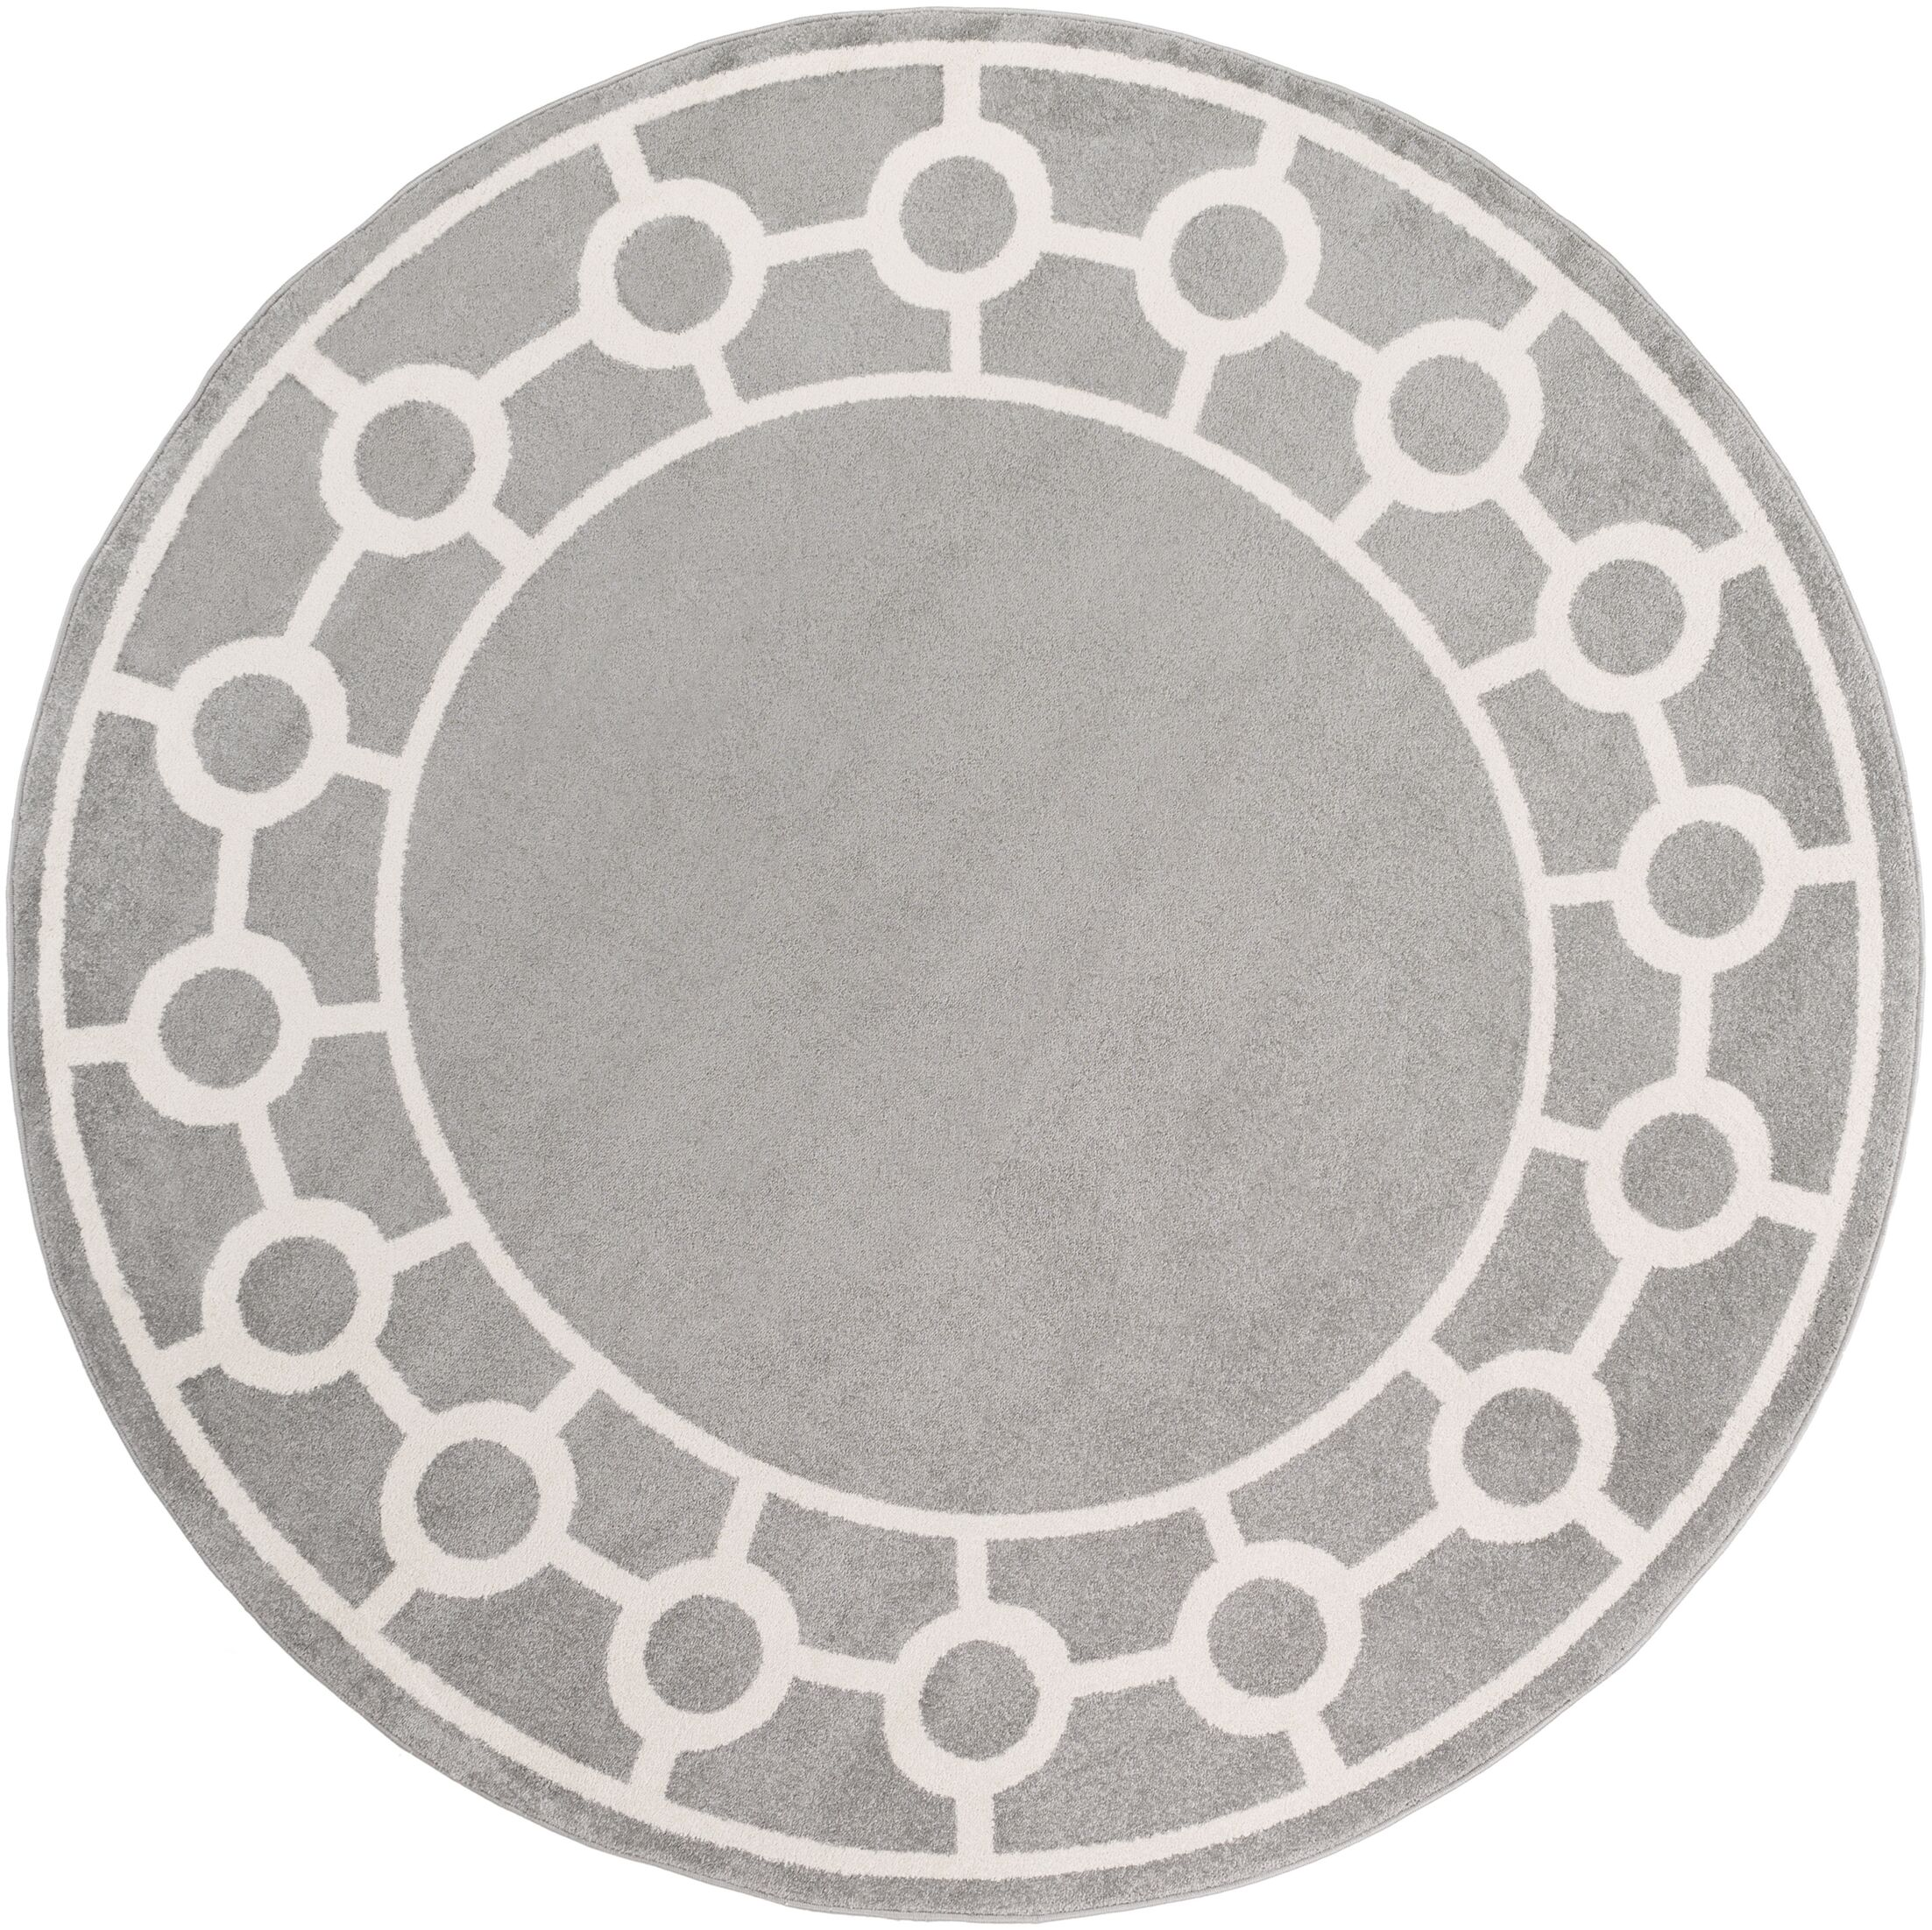 Siclen Gray Area Rug Rug Size: Round 7'10